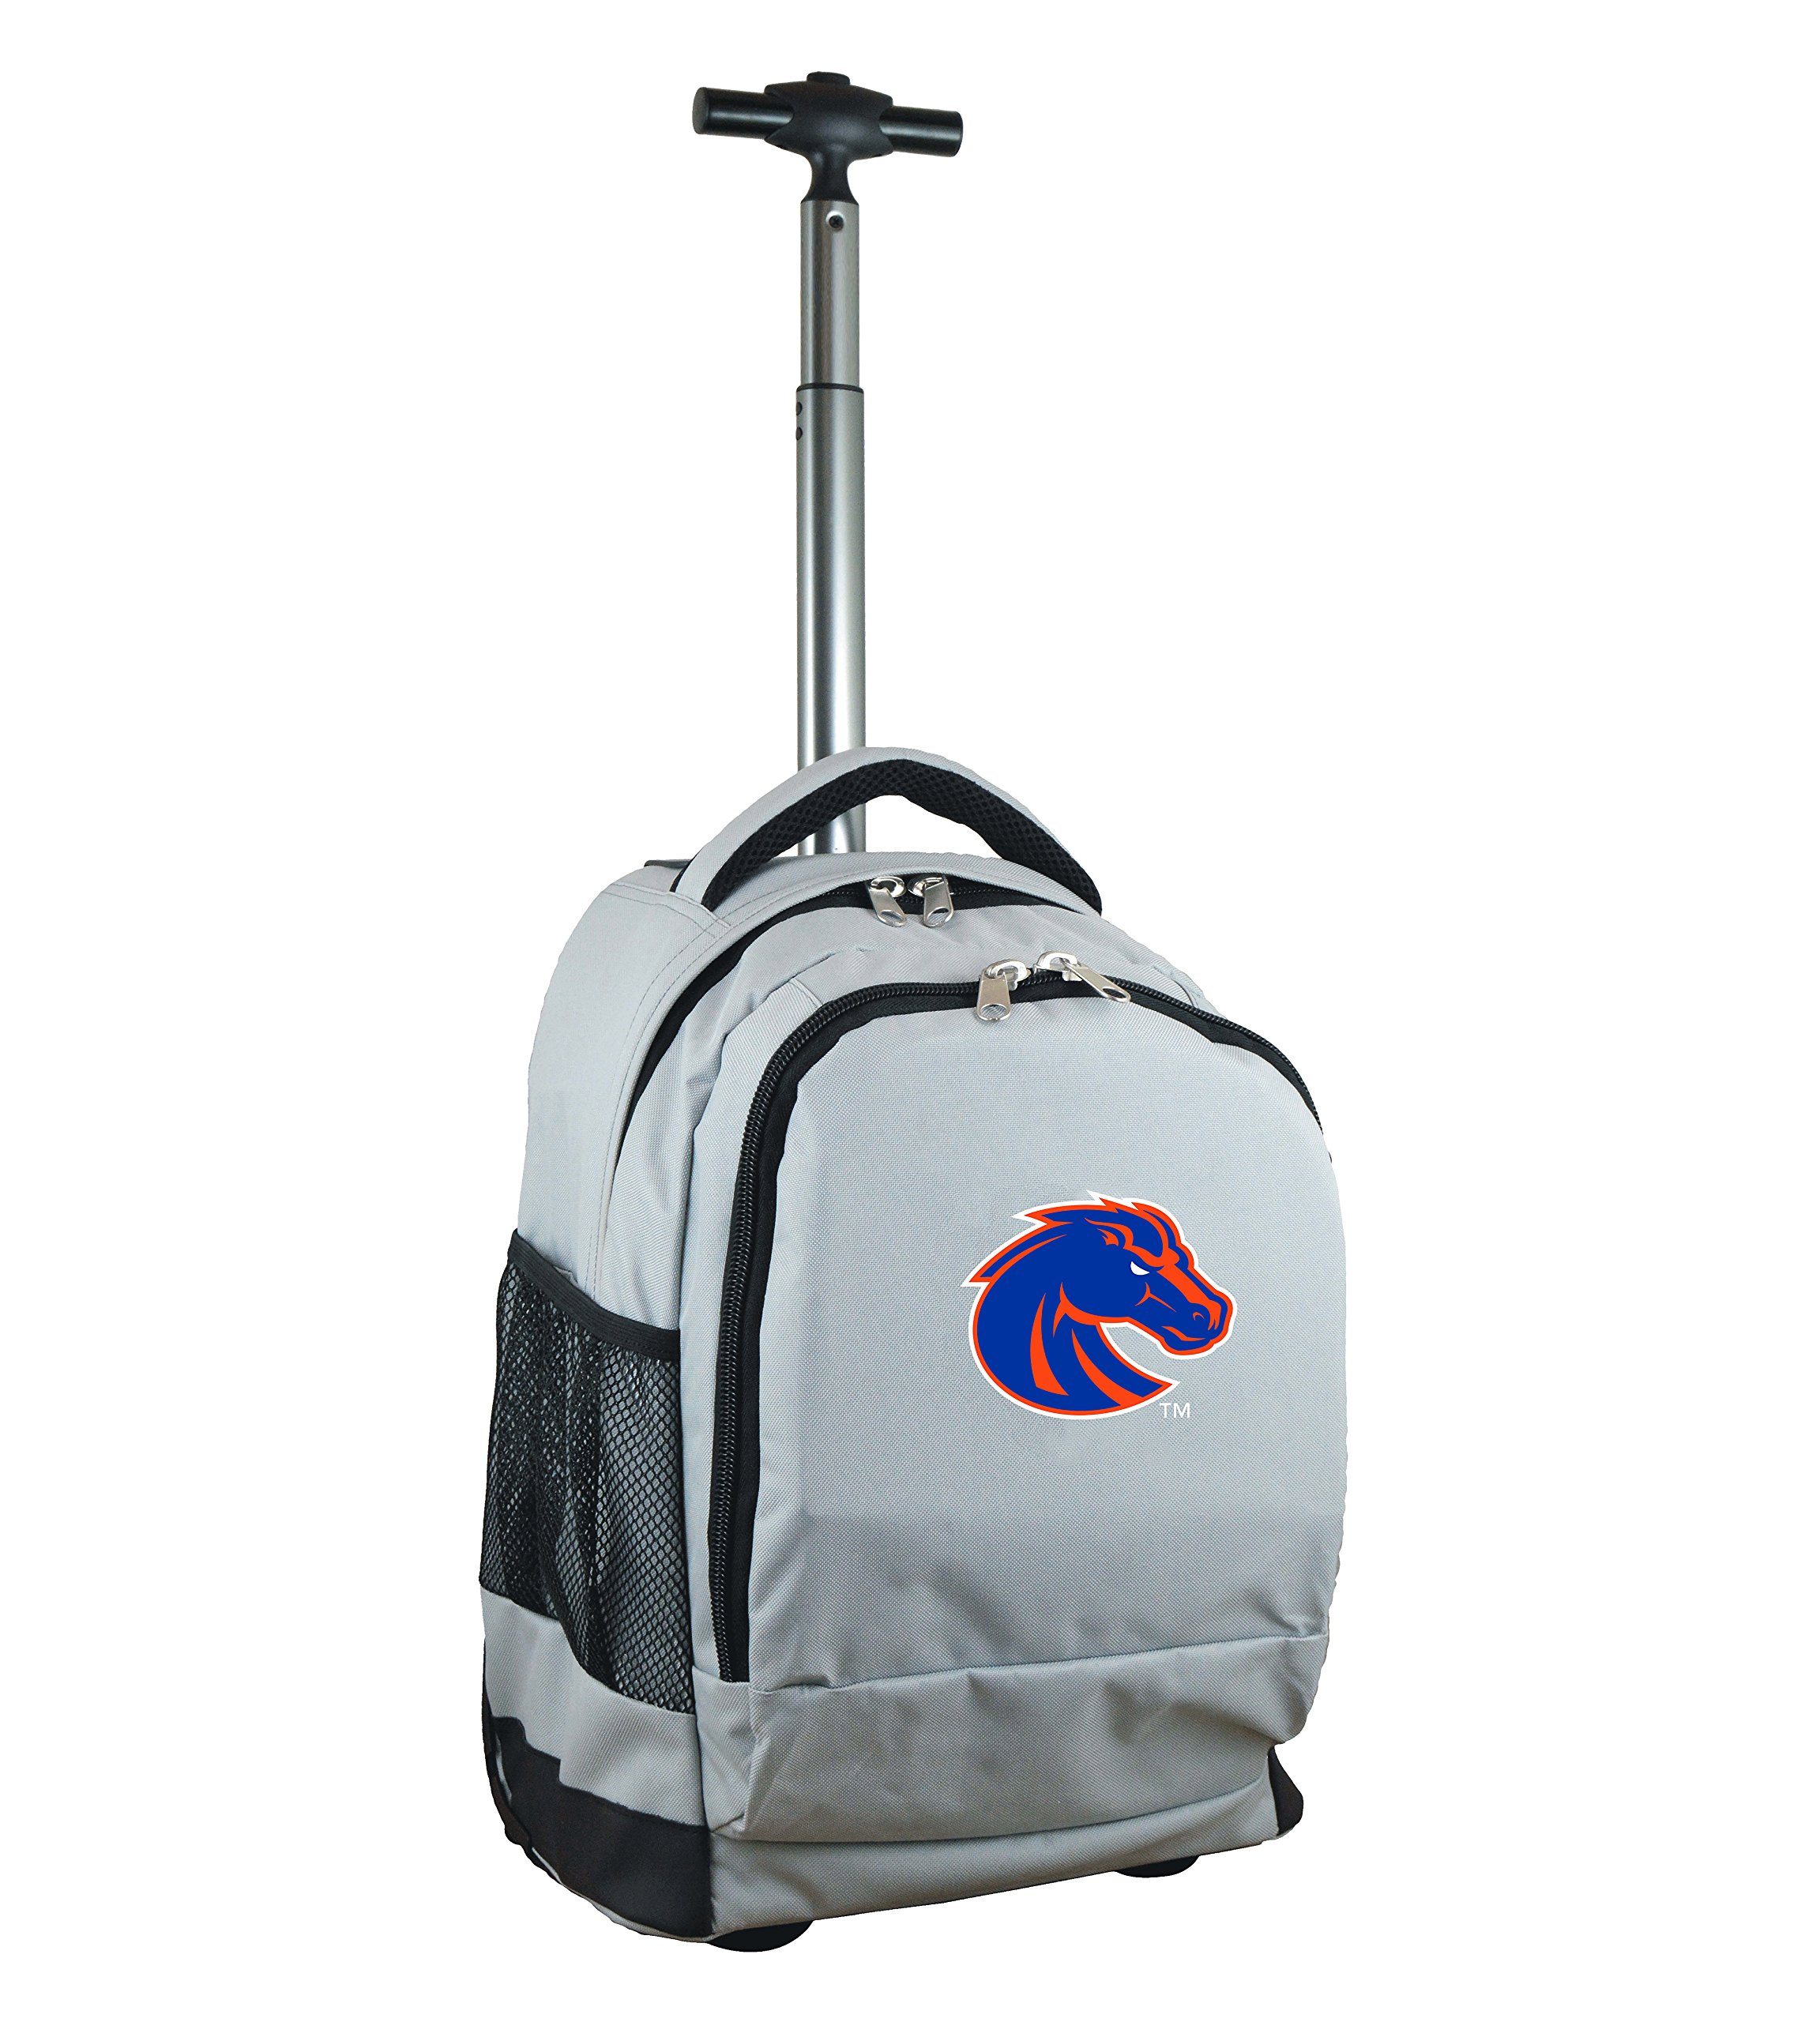 Denco NCAA Boise State Broncos Expedition Wheeled Backpack, 19-inches, Grey by Denco (Image #1)